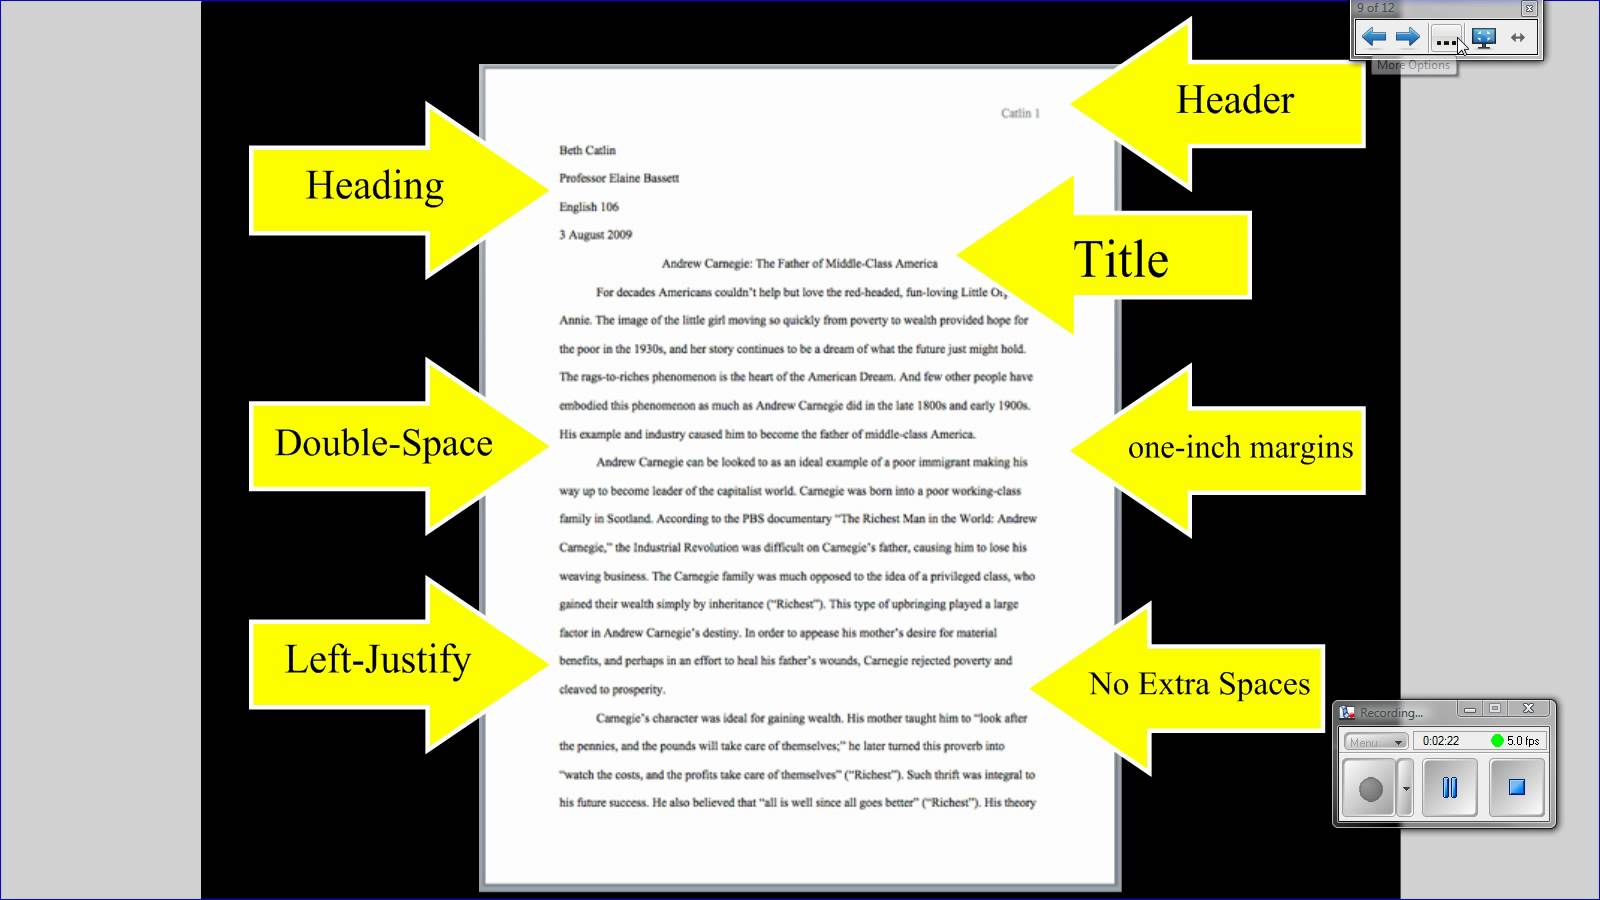 standard essay margin size remove hyperlink menu item academic tips